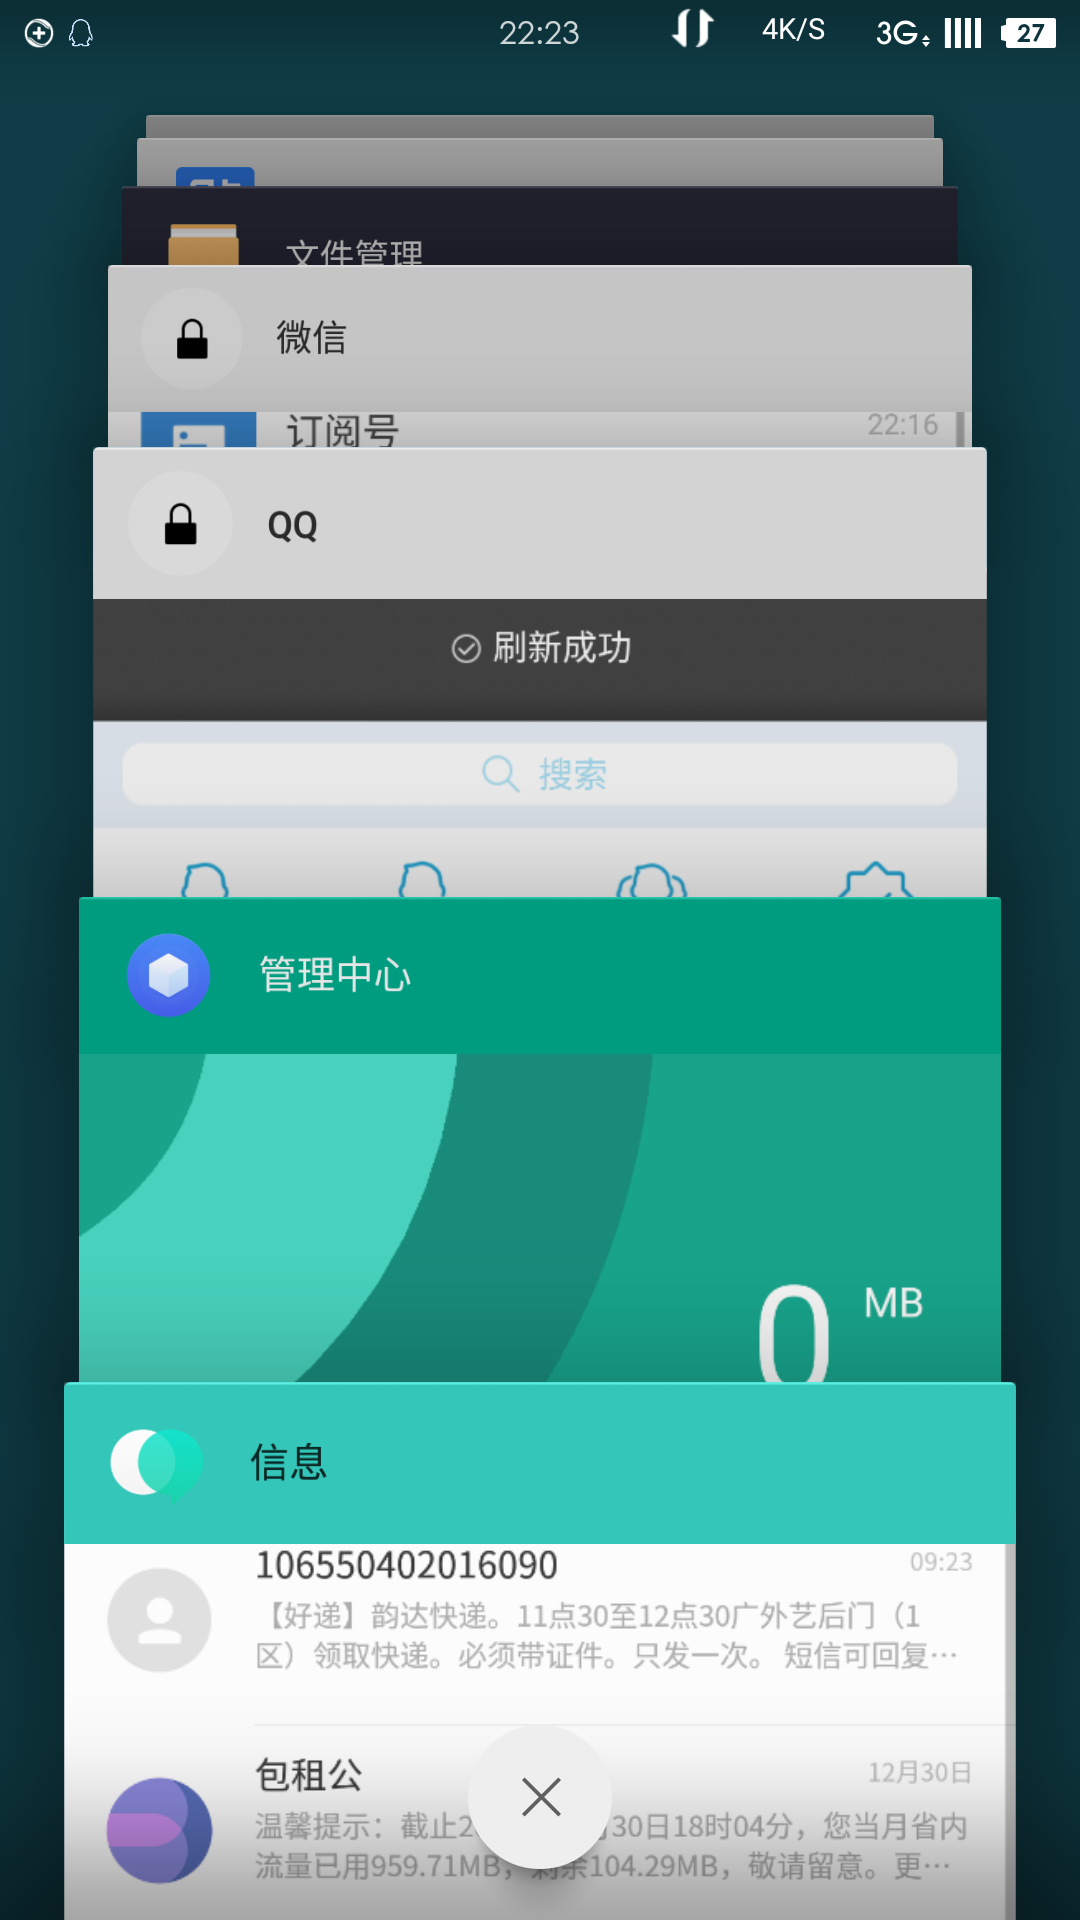 Screenshot_2015-12-31-22-23-33.png